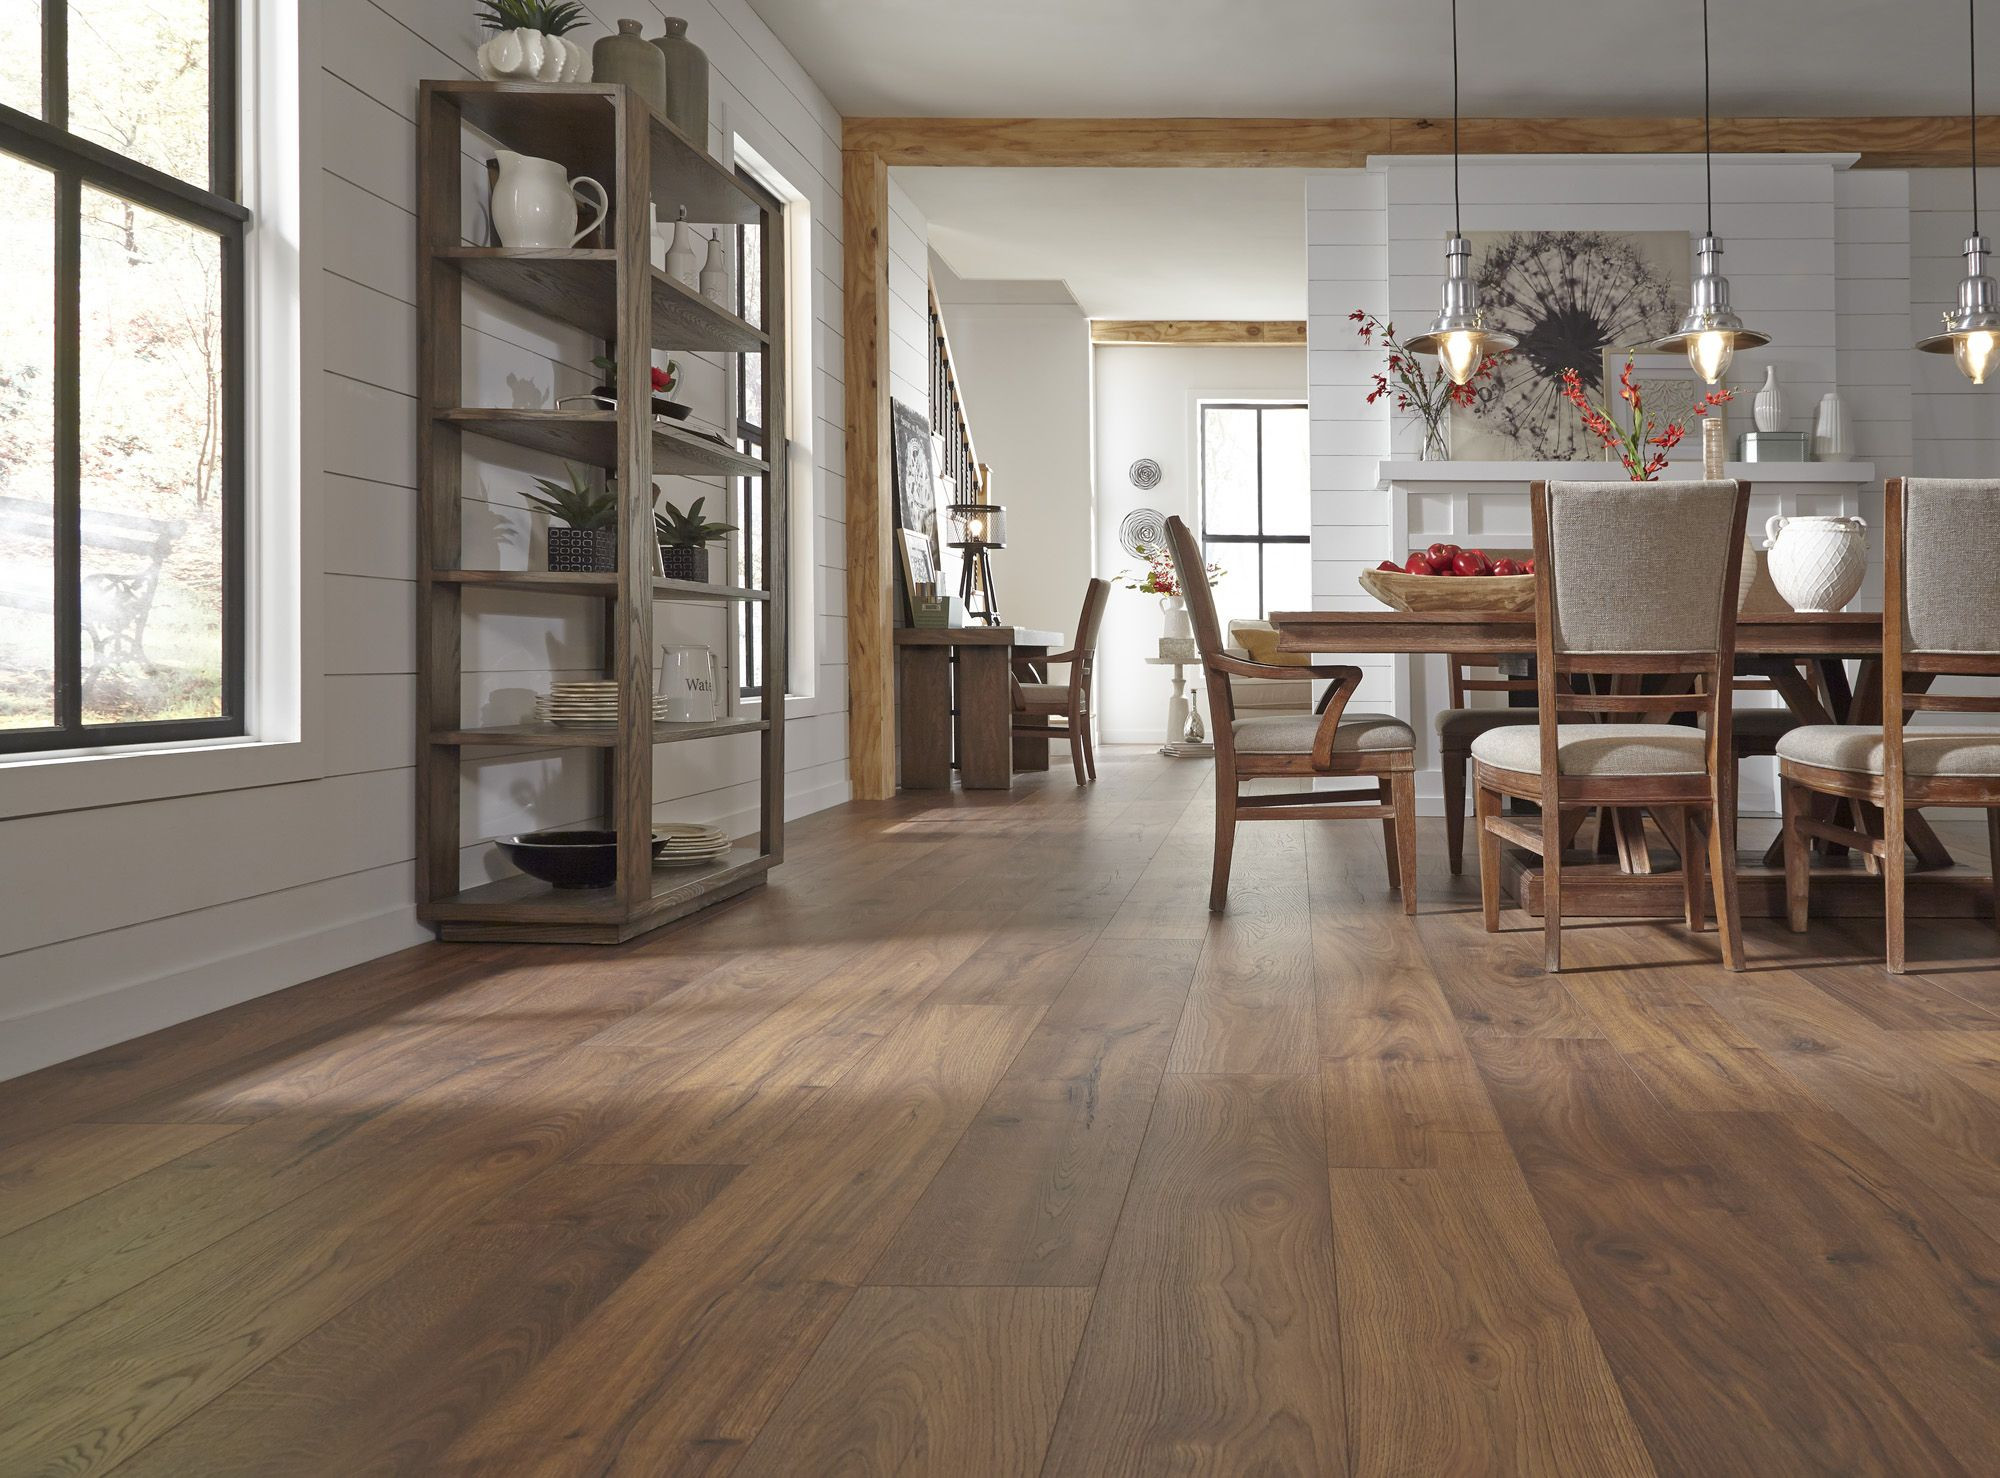 hardwood floor refinishing toronto reviews of skyline oak dream home x2o water resistant laminate floors within skyline oak dream home x2o water resistant laminate